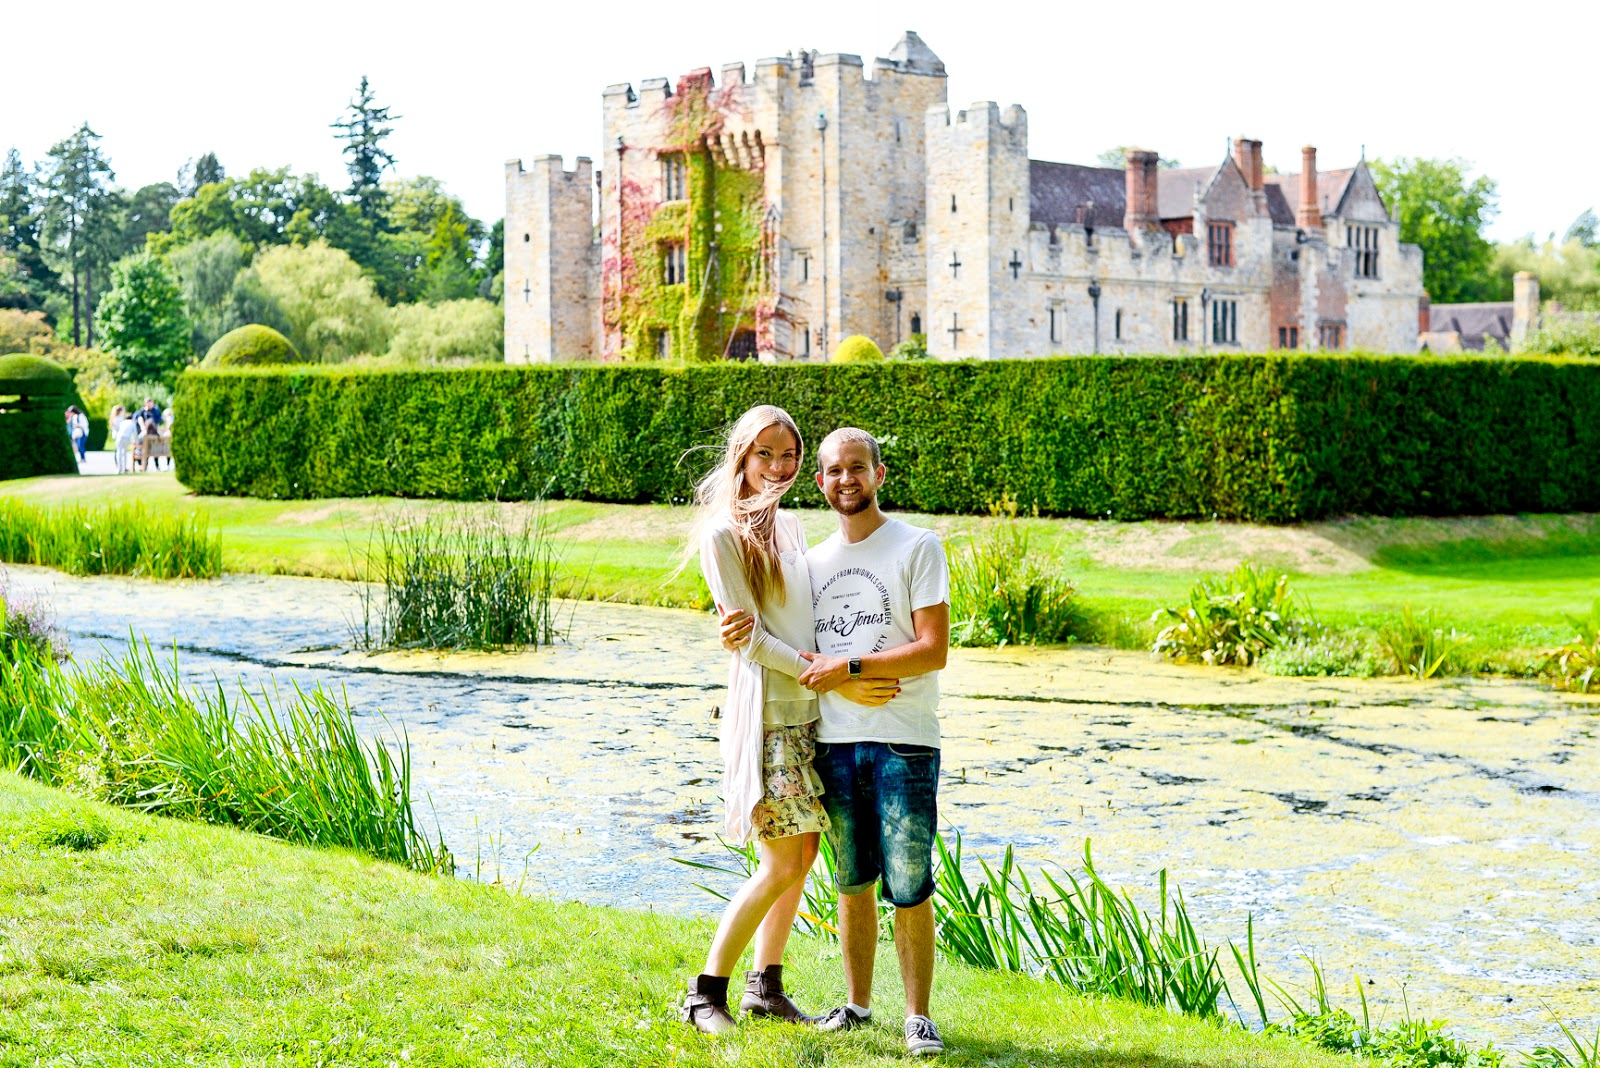 Staying At Hever Castle, Hever Castle, Anne Boleyn's Childhood Home, Anne Boleyn, King Henry VIII, Jousting, English History, Royal Tudor Places